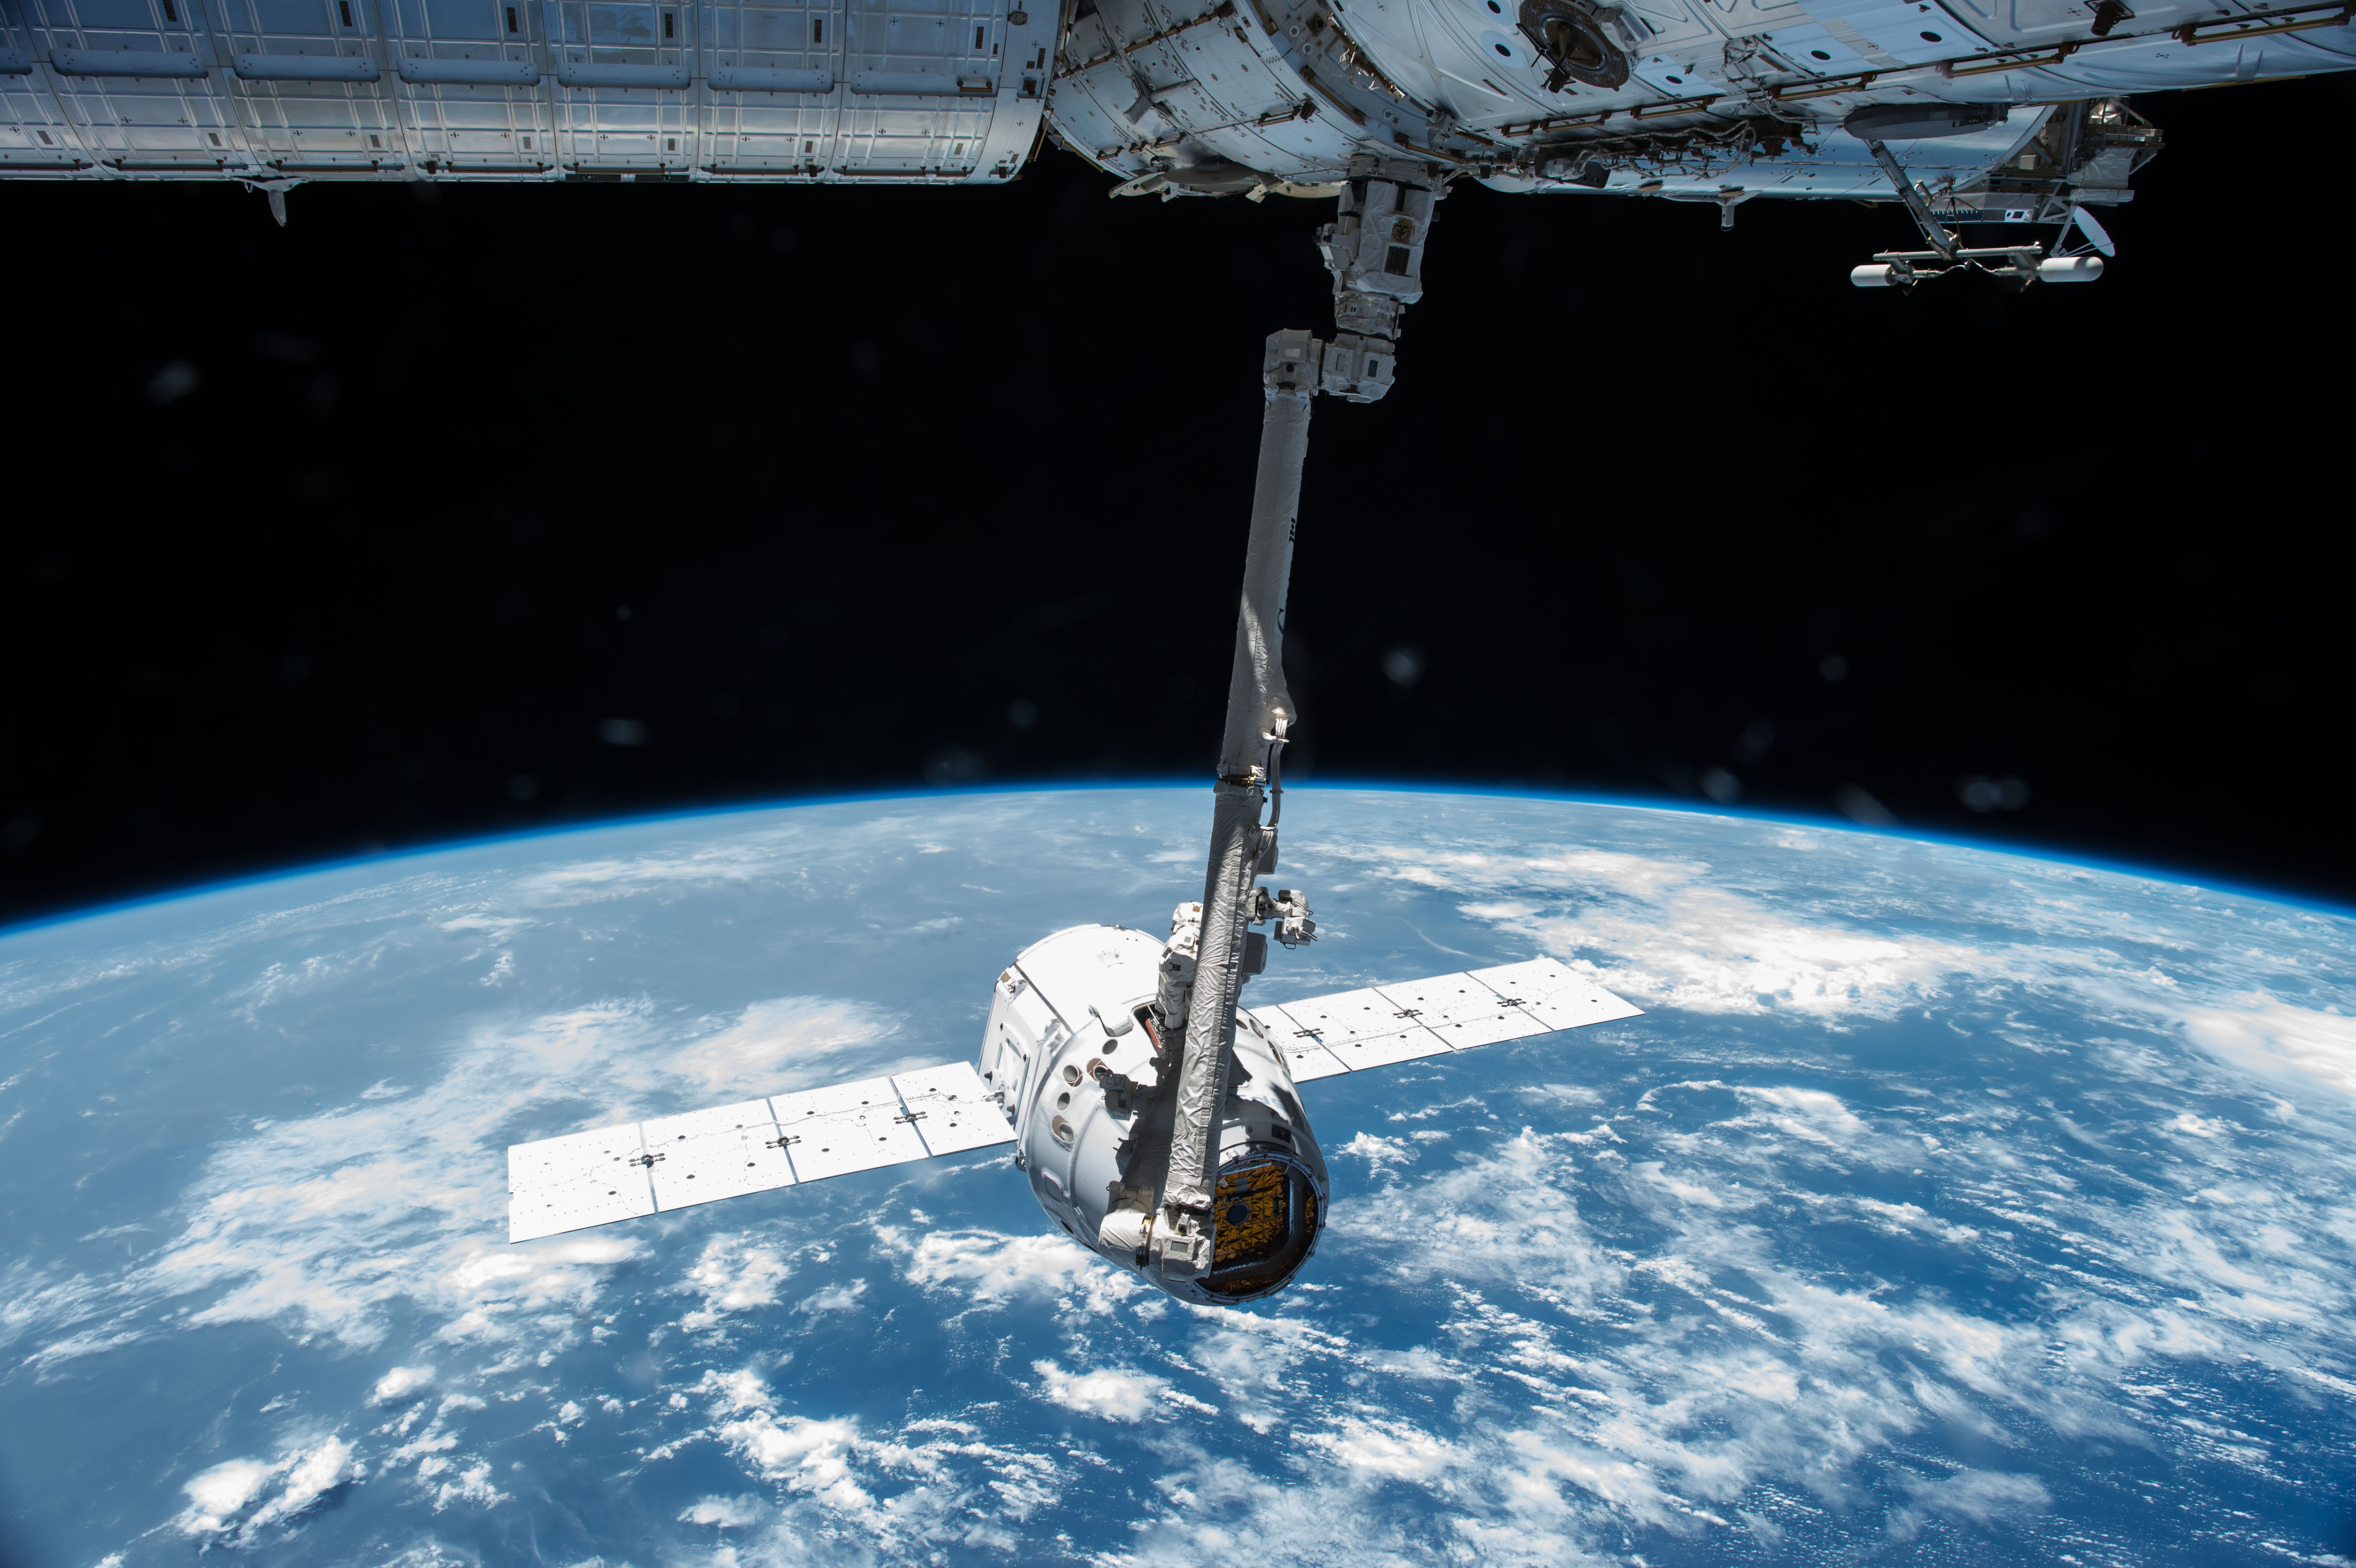 earth dragon from spacex - photo #3